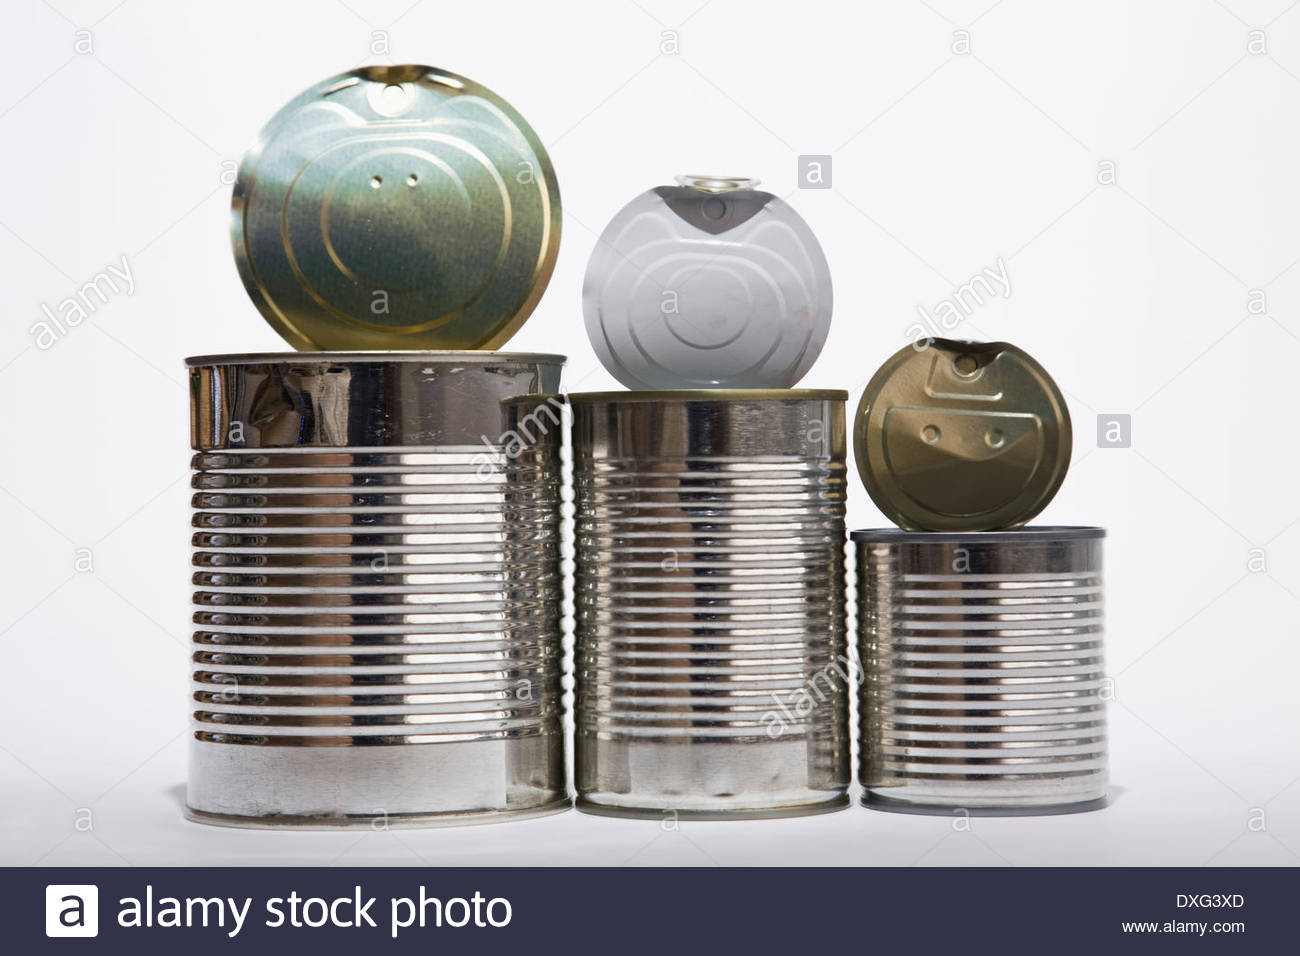 Empty tins - Stock Image